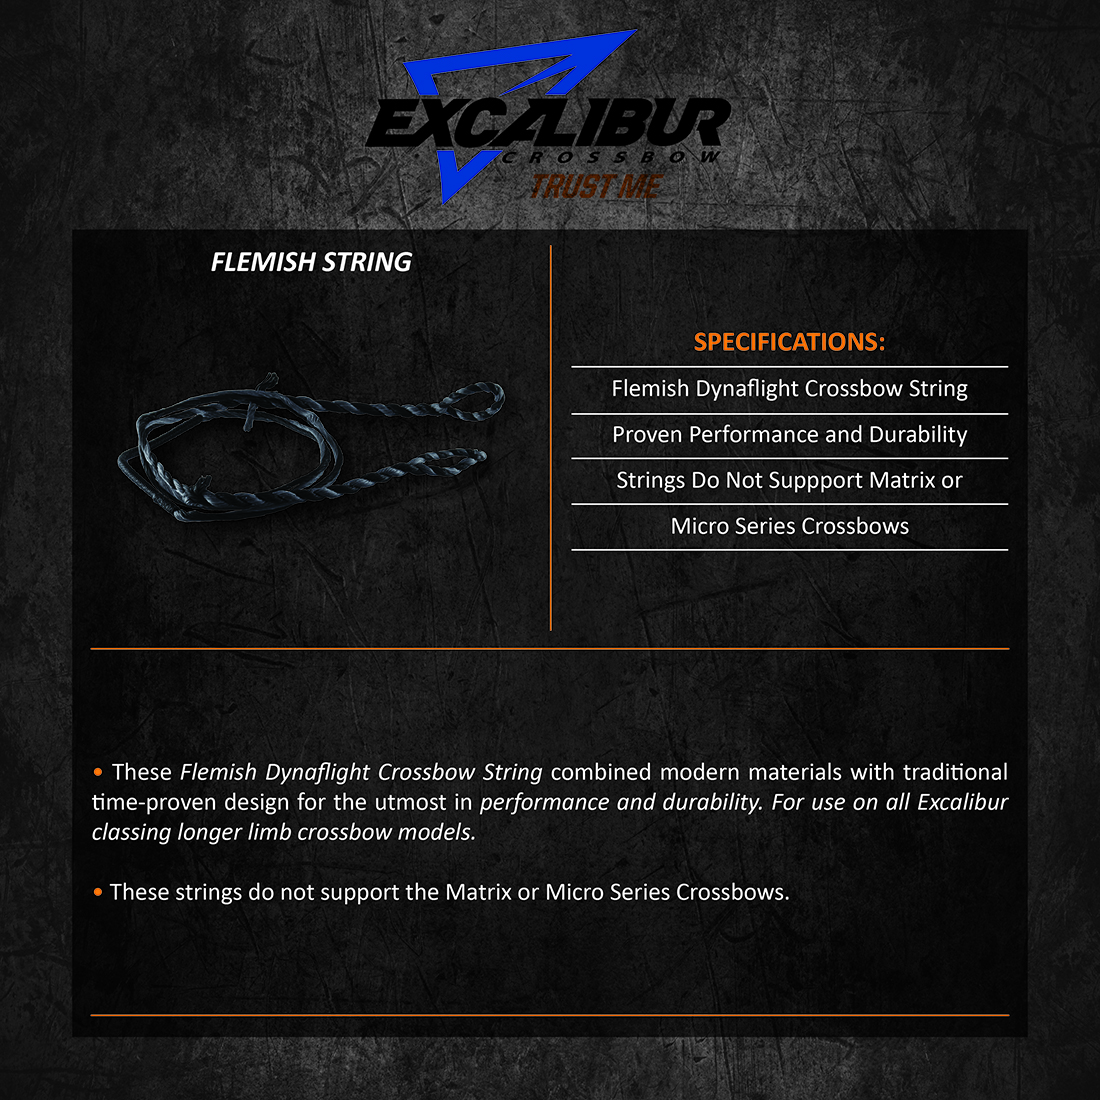 Excalibur_Flemish_String_Product_Description